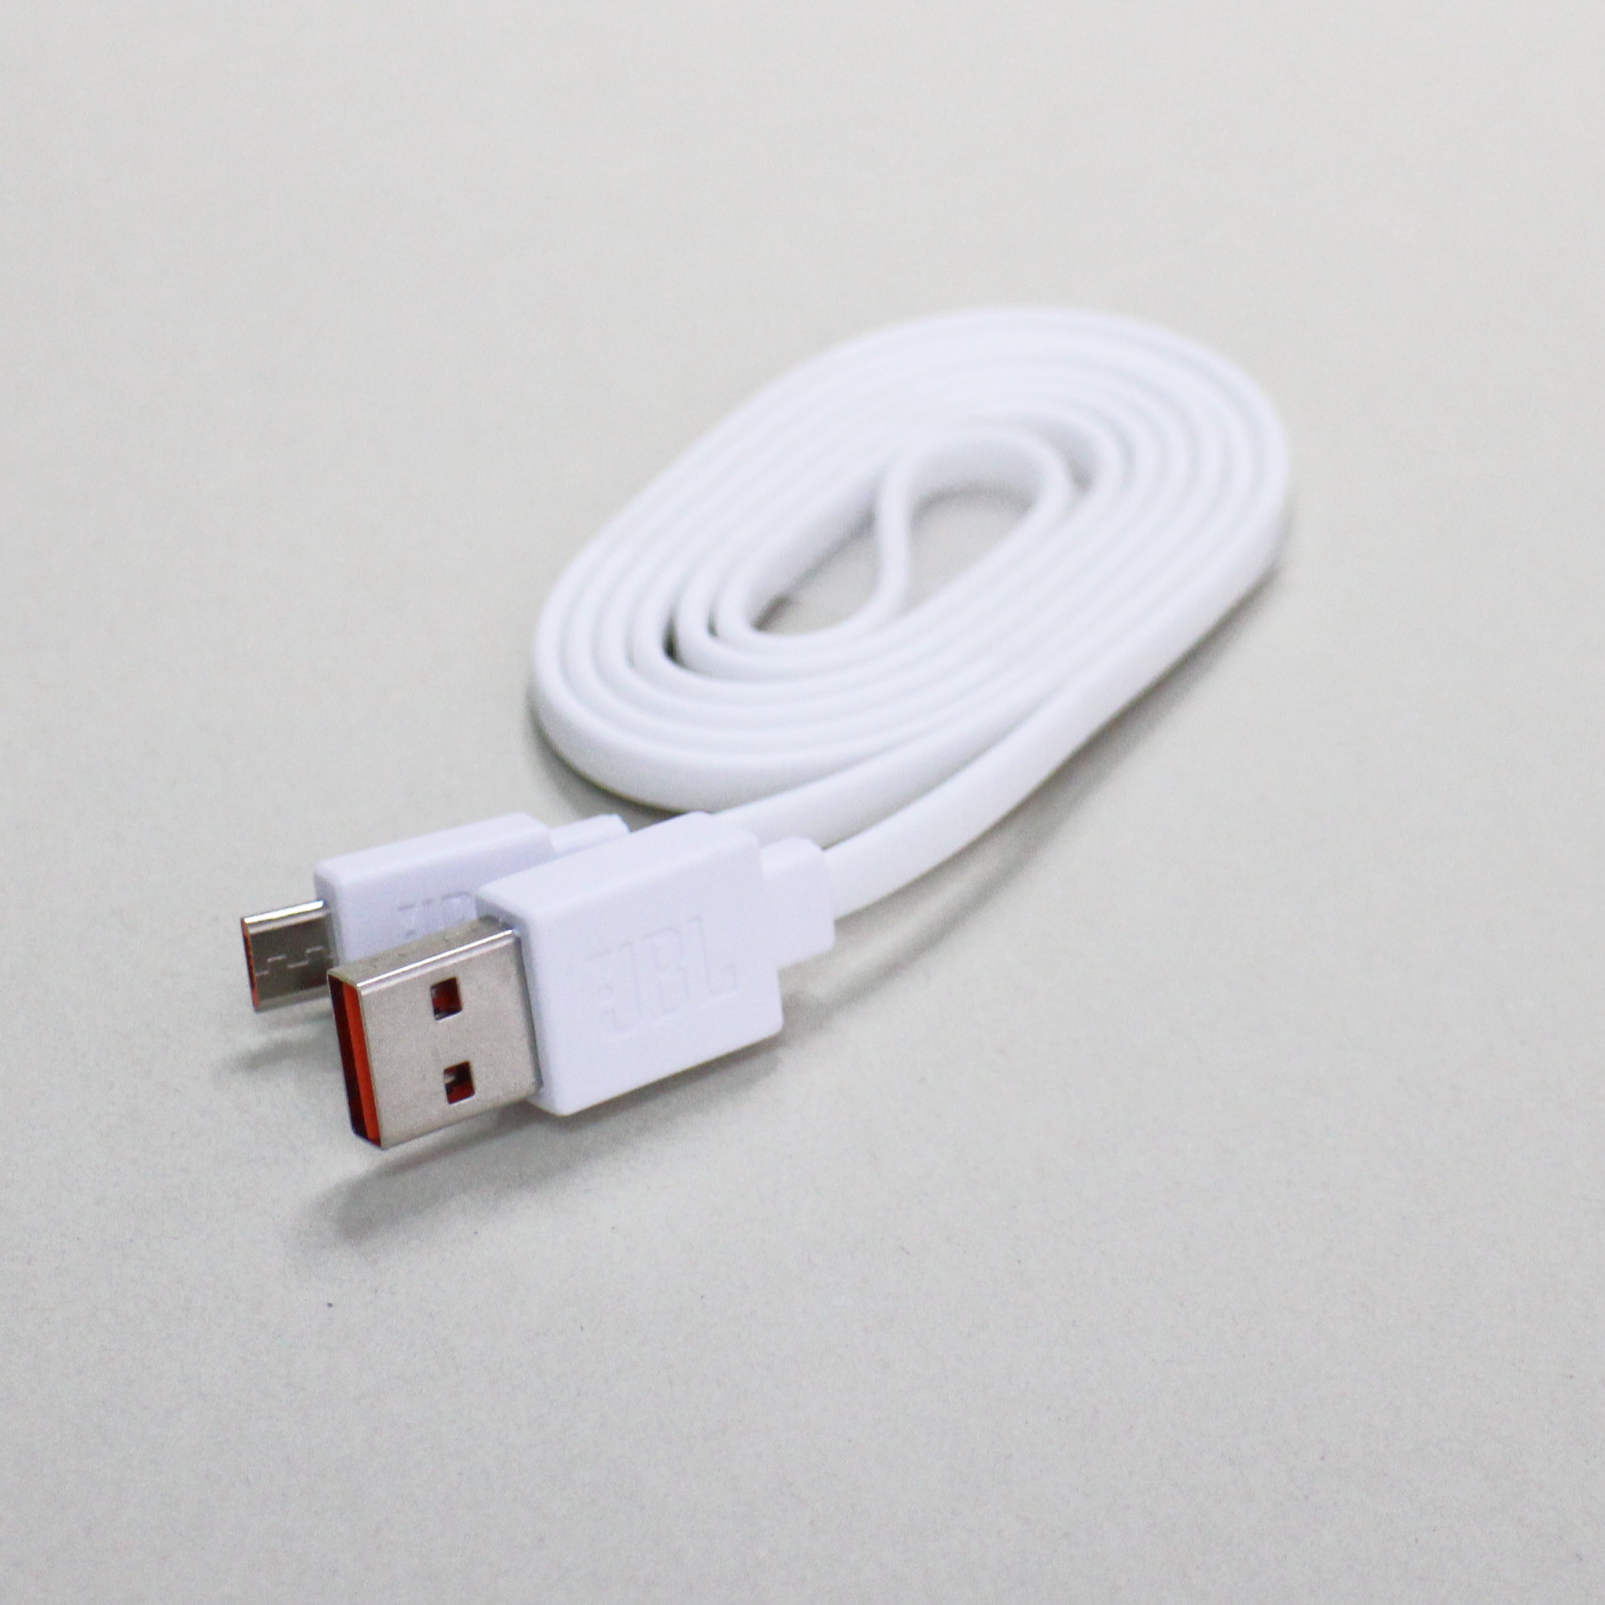 JBL EVEREST 300 USB cable